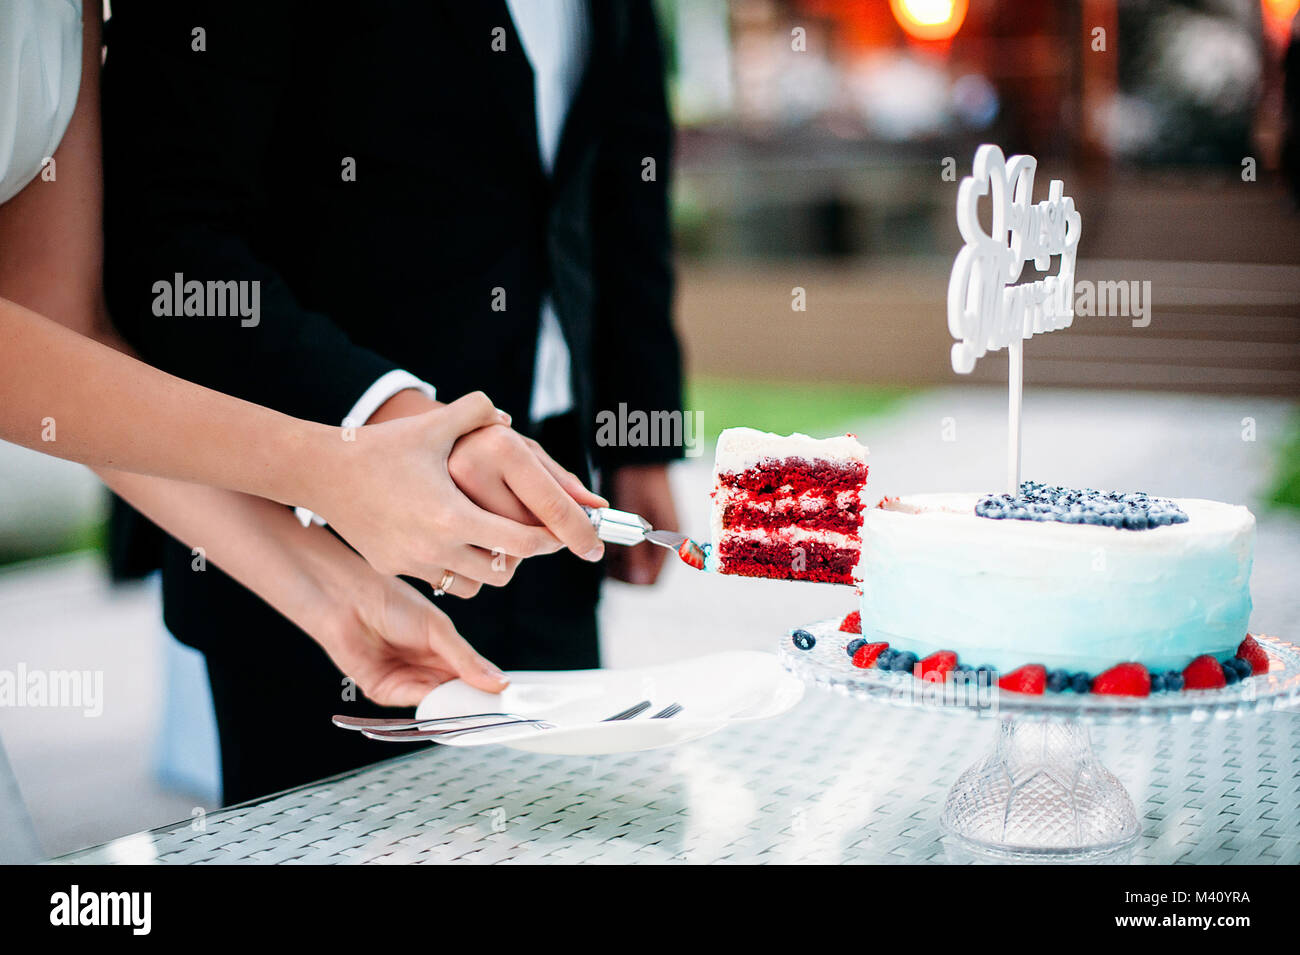 The newlyweds cut a piece of wedding cake Red Velvet. White and blue gradient cake with sign Just Married, decoration - Stock Image